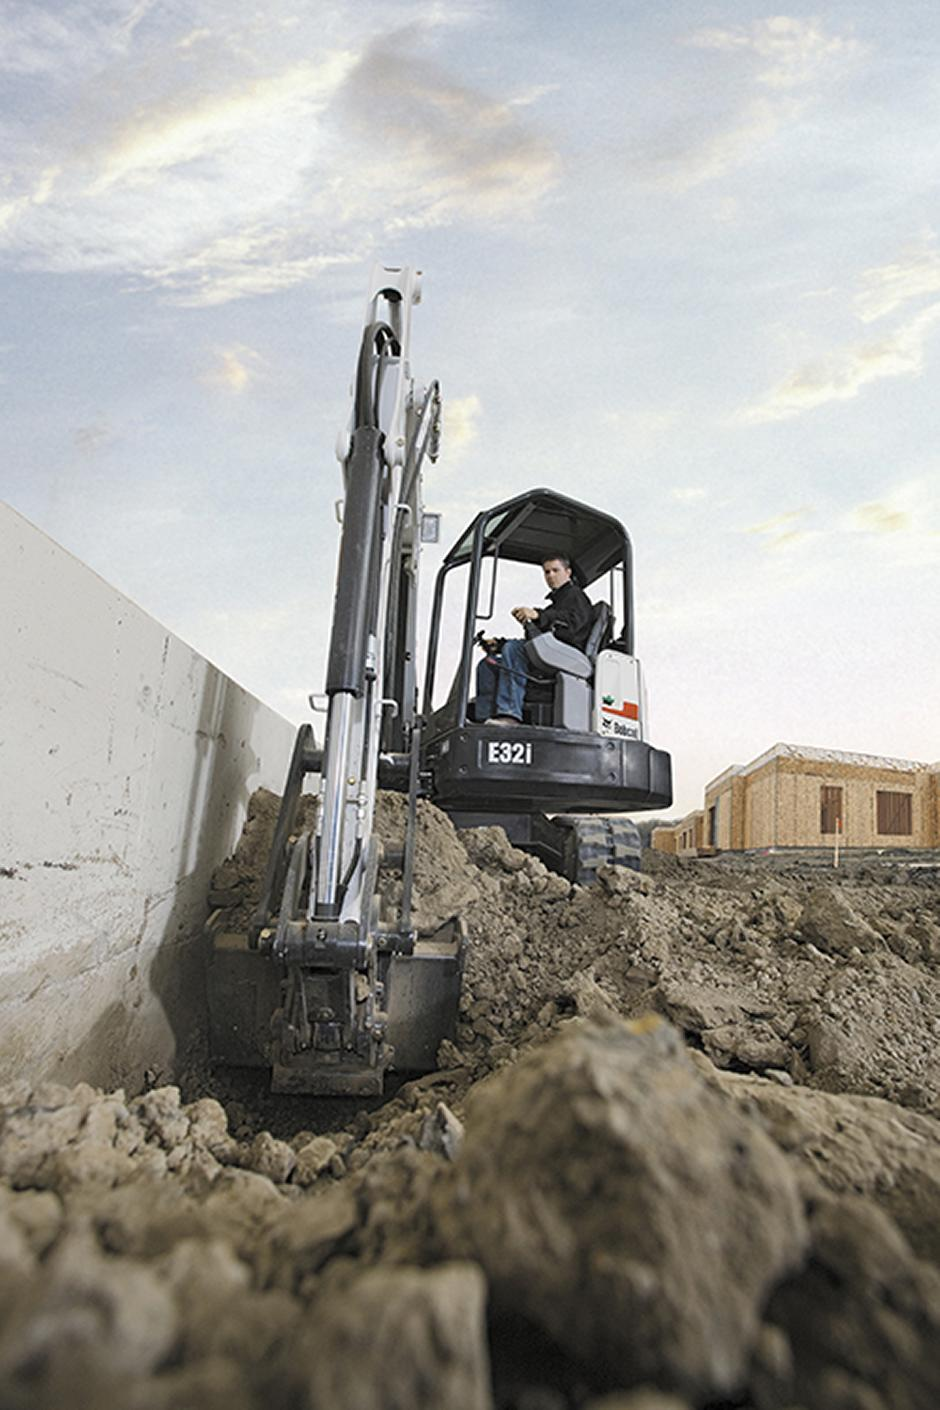 209136-exc_e32_with_bucket_clamp-98855-47417-hr_mg_full